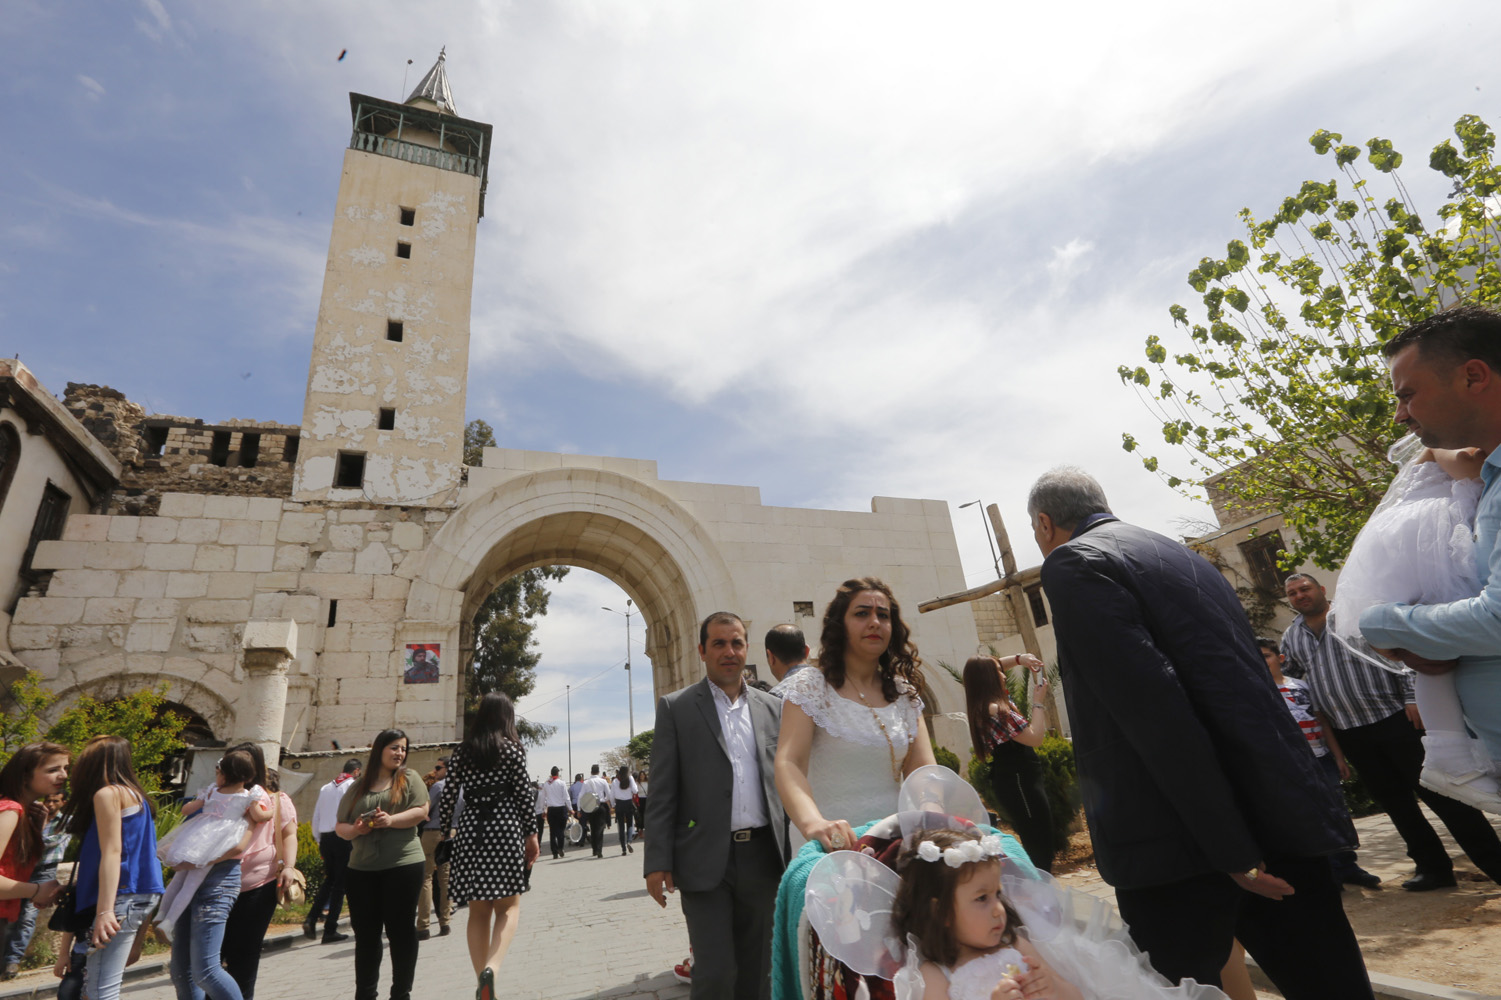 Syrian people walk down a street during a parade celebrating Easter in the Christian neighbourhood of Bab Sharqi in Old Damascus on April 1, 2018. / AFP PHOTO / Louai Beshara